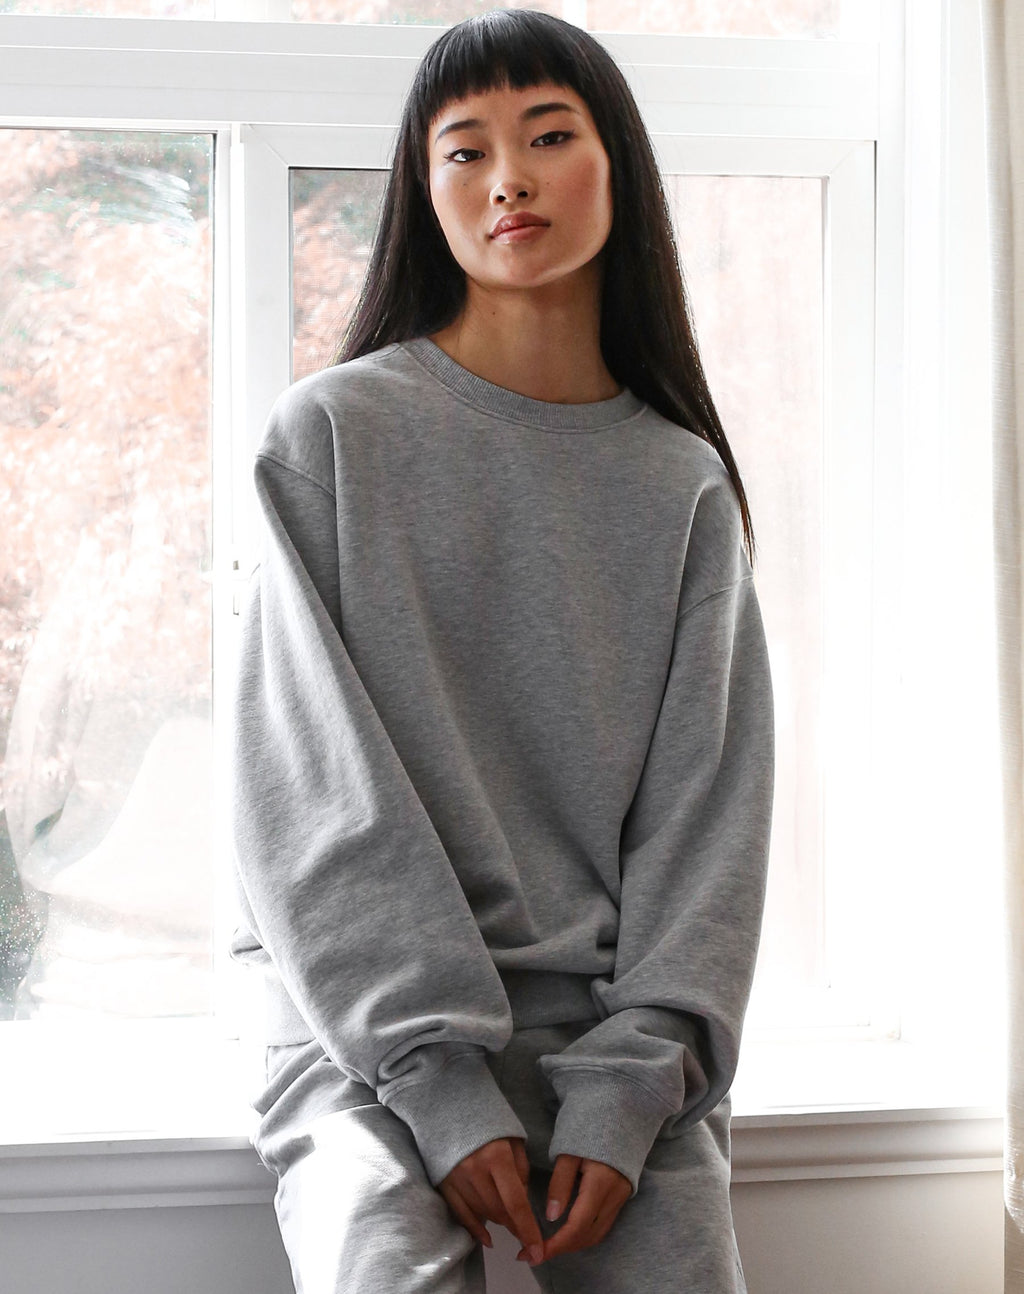 Meet your new Best Friend. Our new style of Crew Neck Sweatshirt is the Best Friend fit. She has a relaxed, slightly slouchy body and sits at your high hip with a waistband that sits close to you. The BF fit has a dropped shoulder and a fuller sleeve with a cuff that fits close to your wrist.     Our Basics collection is 100% cotton and has already been preshrunk so it'll fit you perfectly. We recommend sticking true to size for this collection.